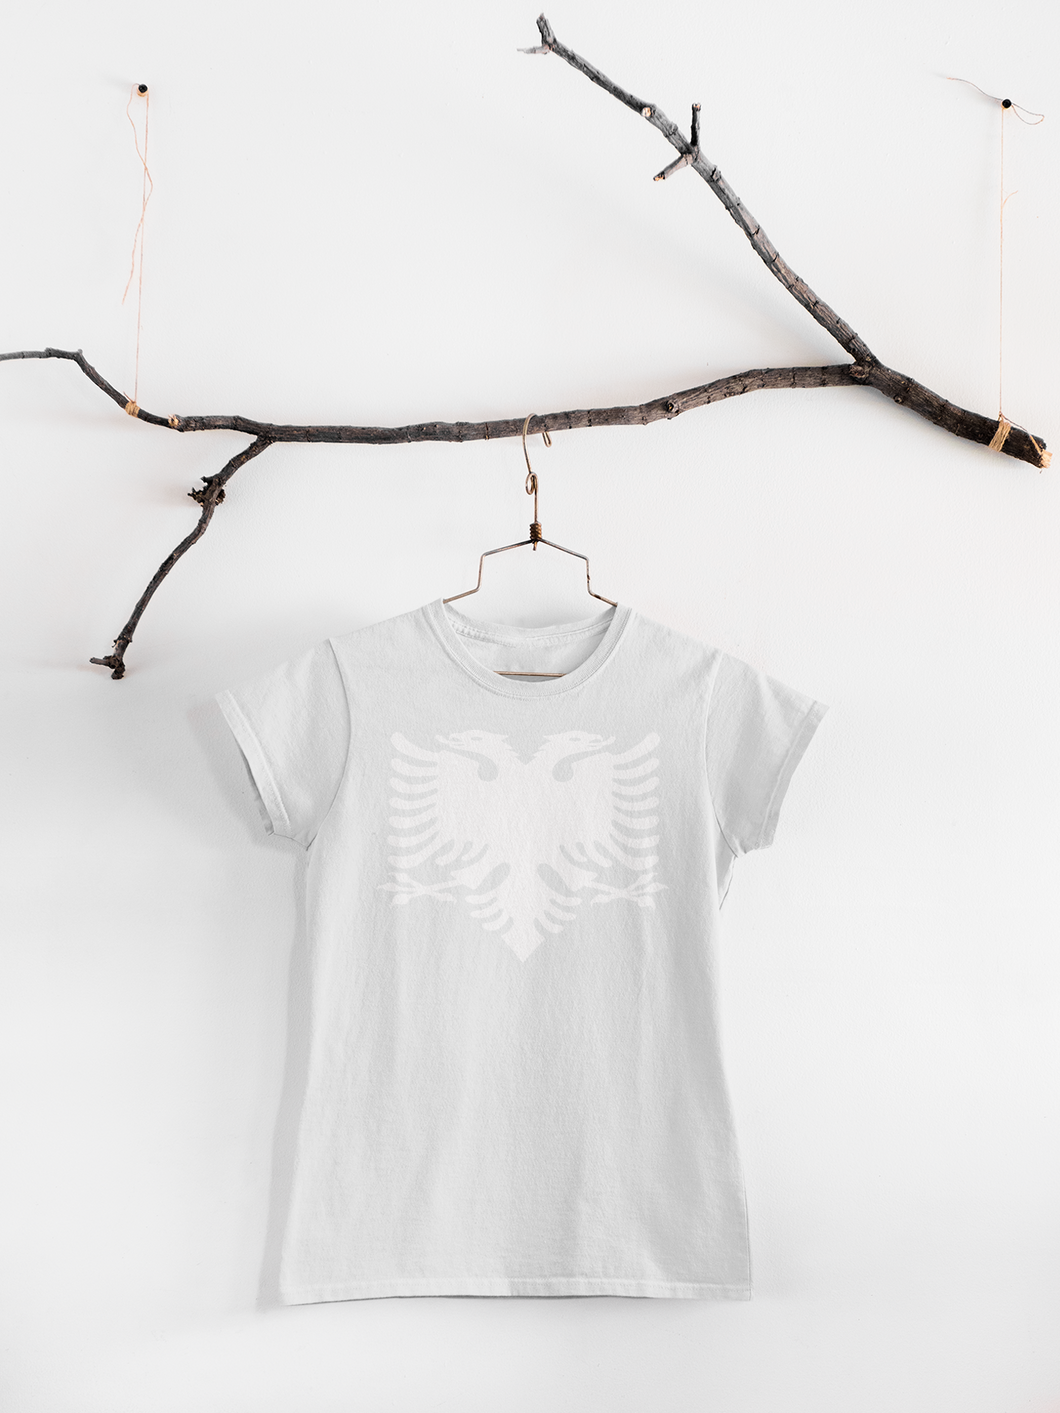 Albanian eagle Round Neck Casual (Women T-shirt)